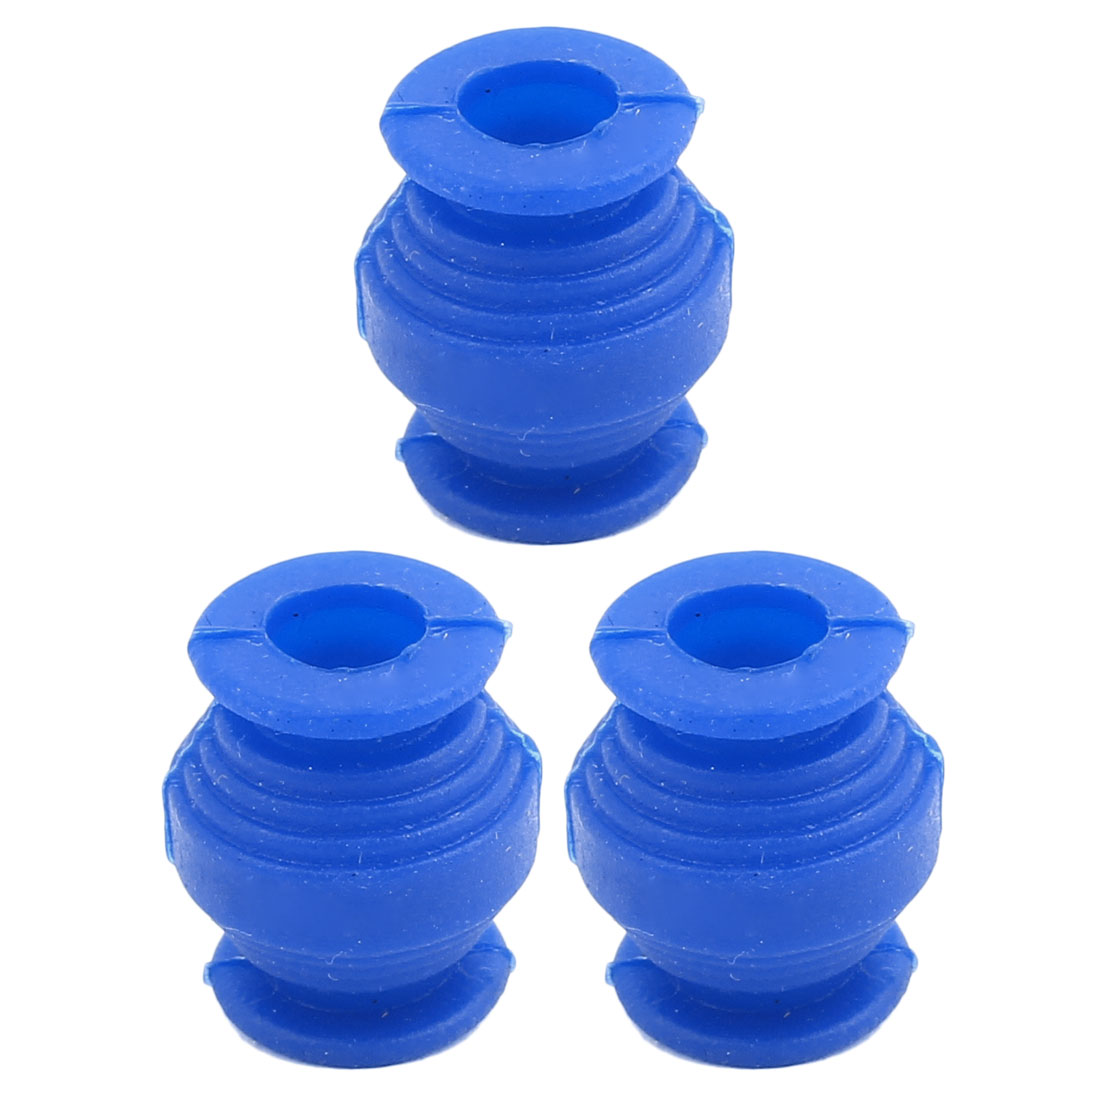 FPV Gimbal Aerial Camera Mount 9mm Inner Dia Shockproof Blue Damping Ball 3pcs - image 3 of 3